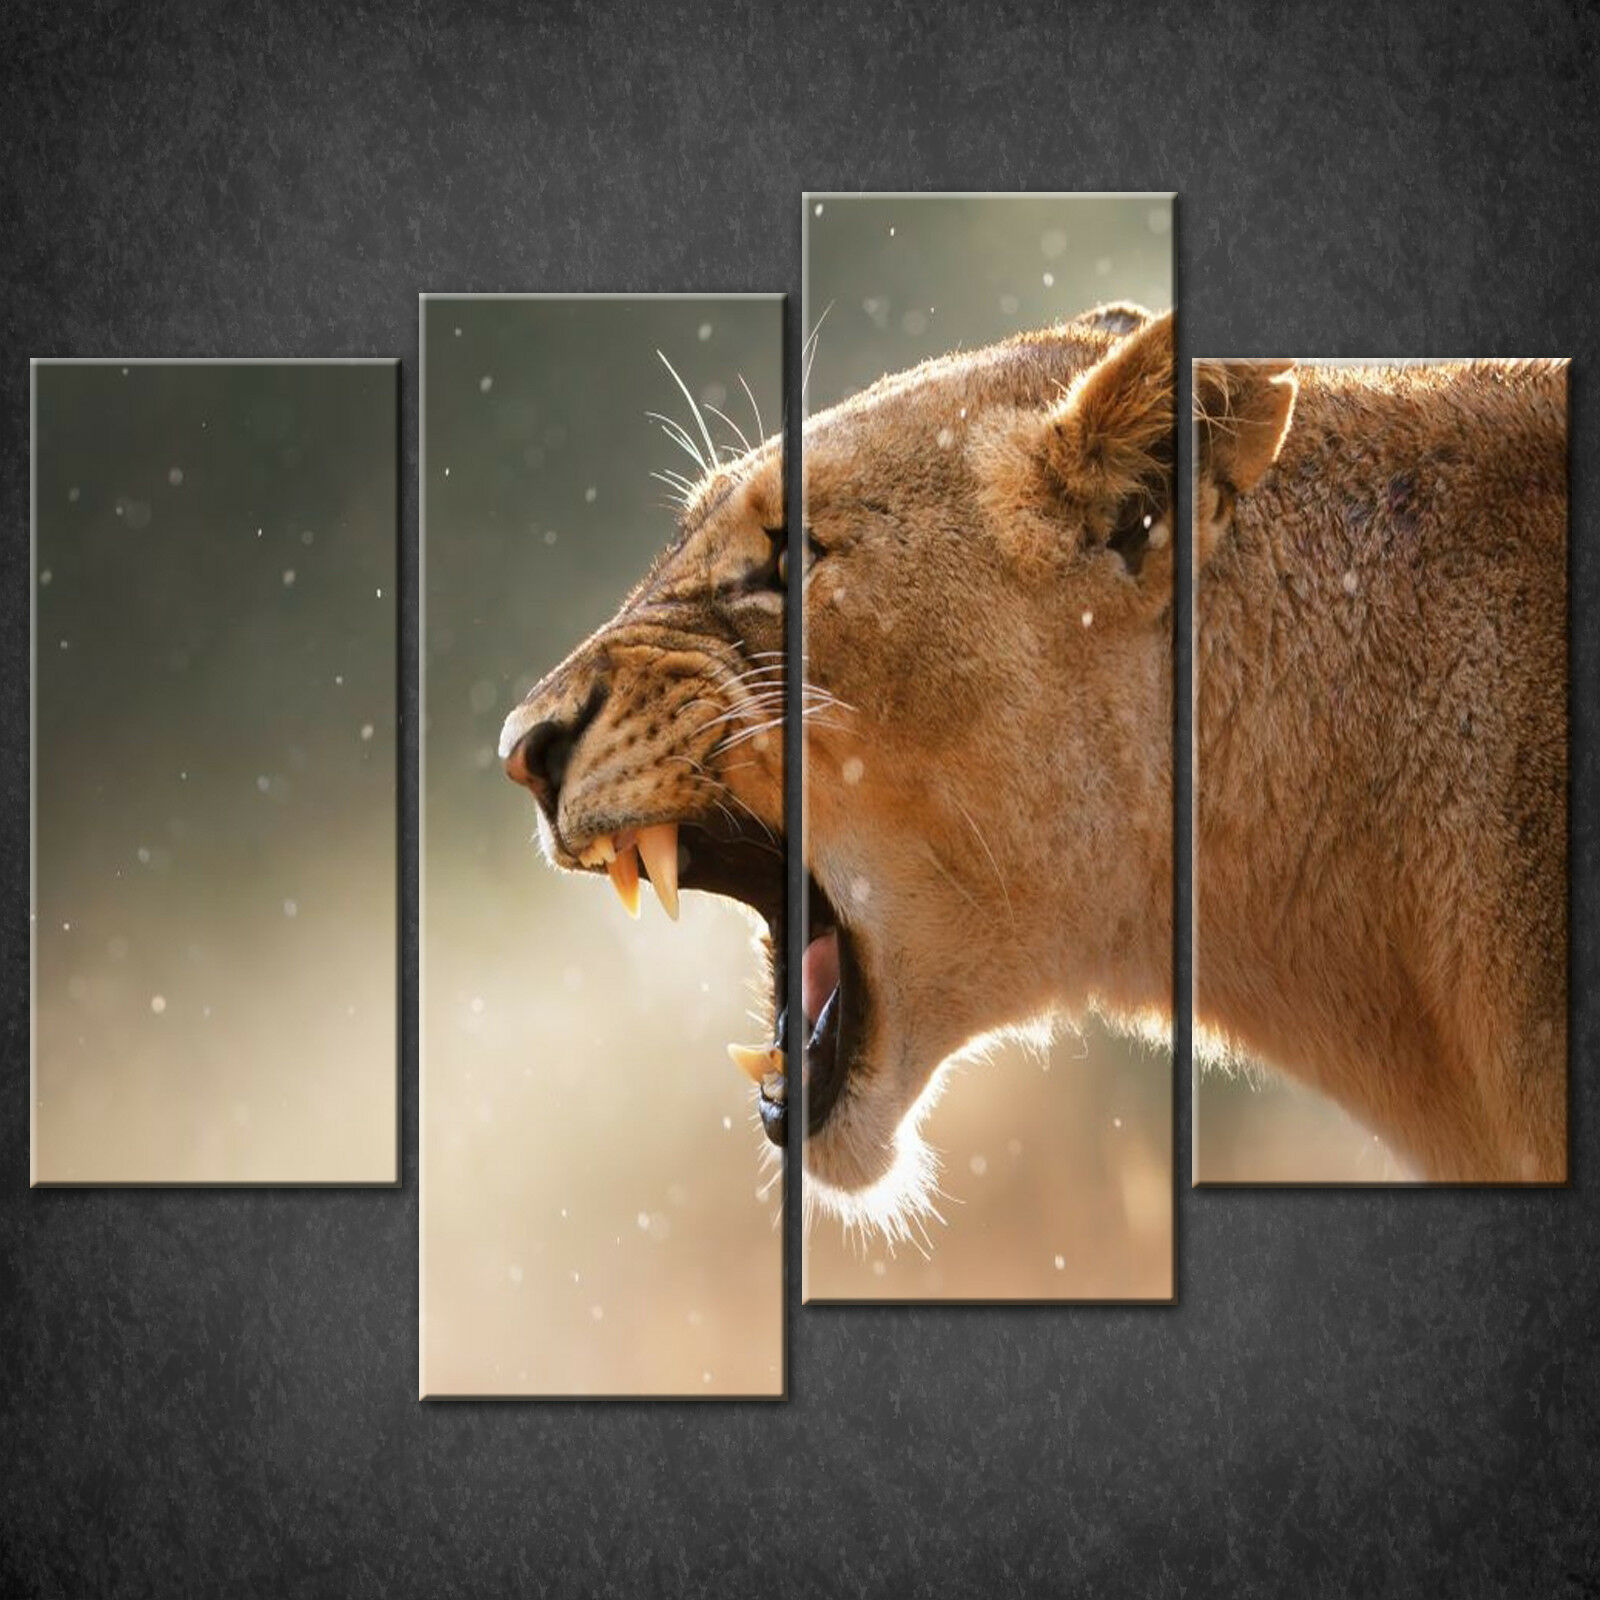 ANGRY LIONESS CANVAS PRINT PICTURE WALL HANGING ART HOME DECOR FREE DELIVERY